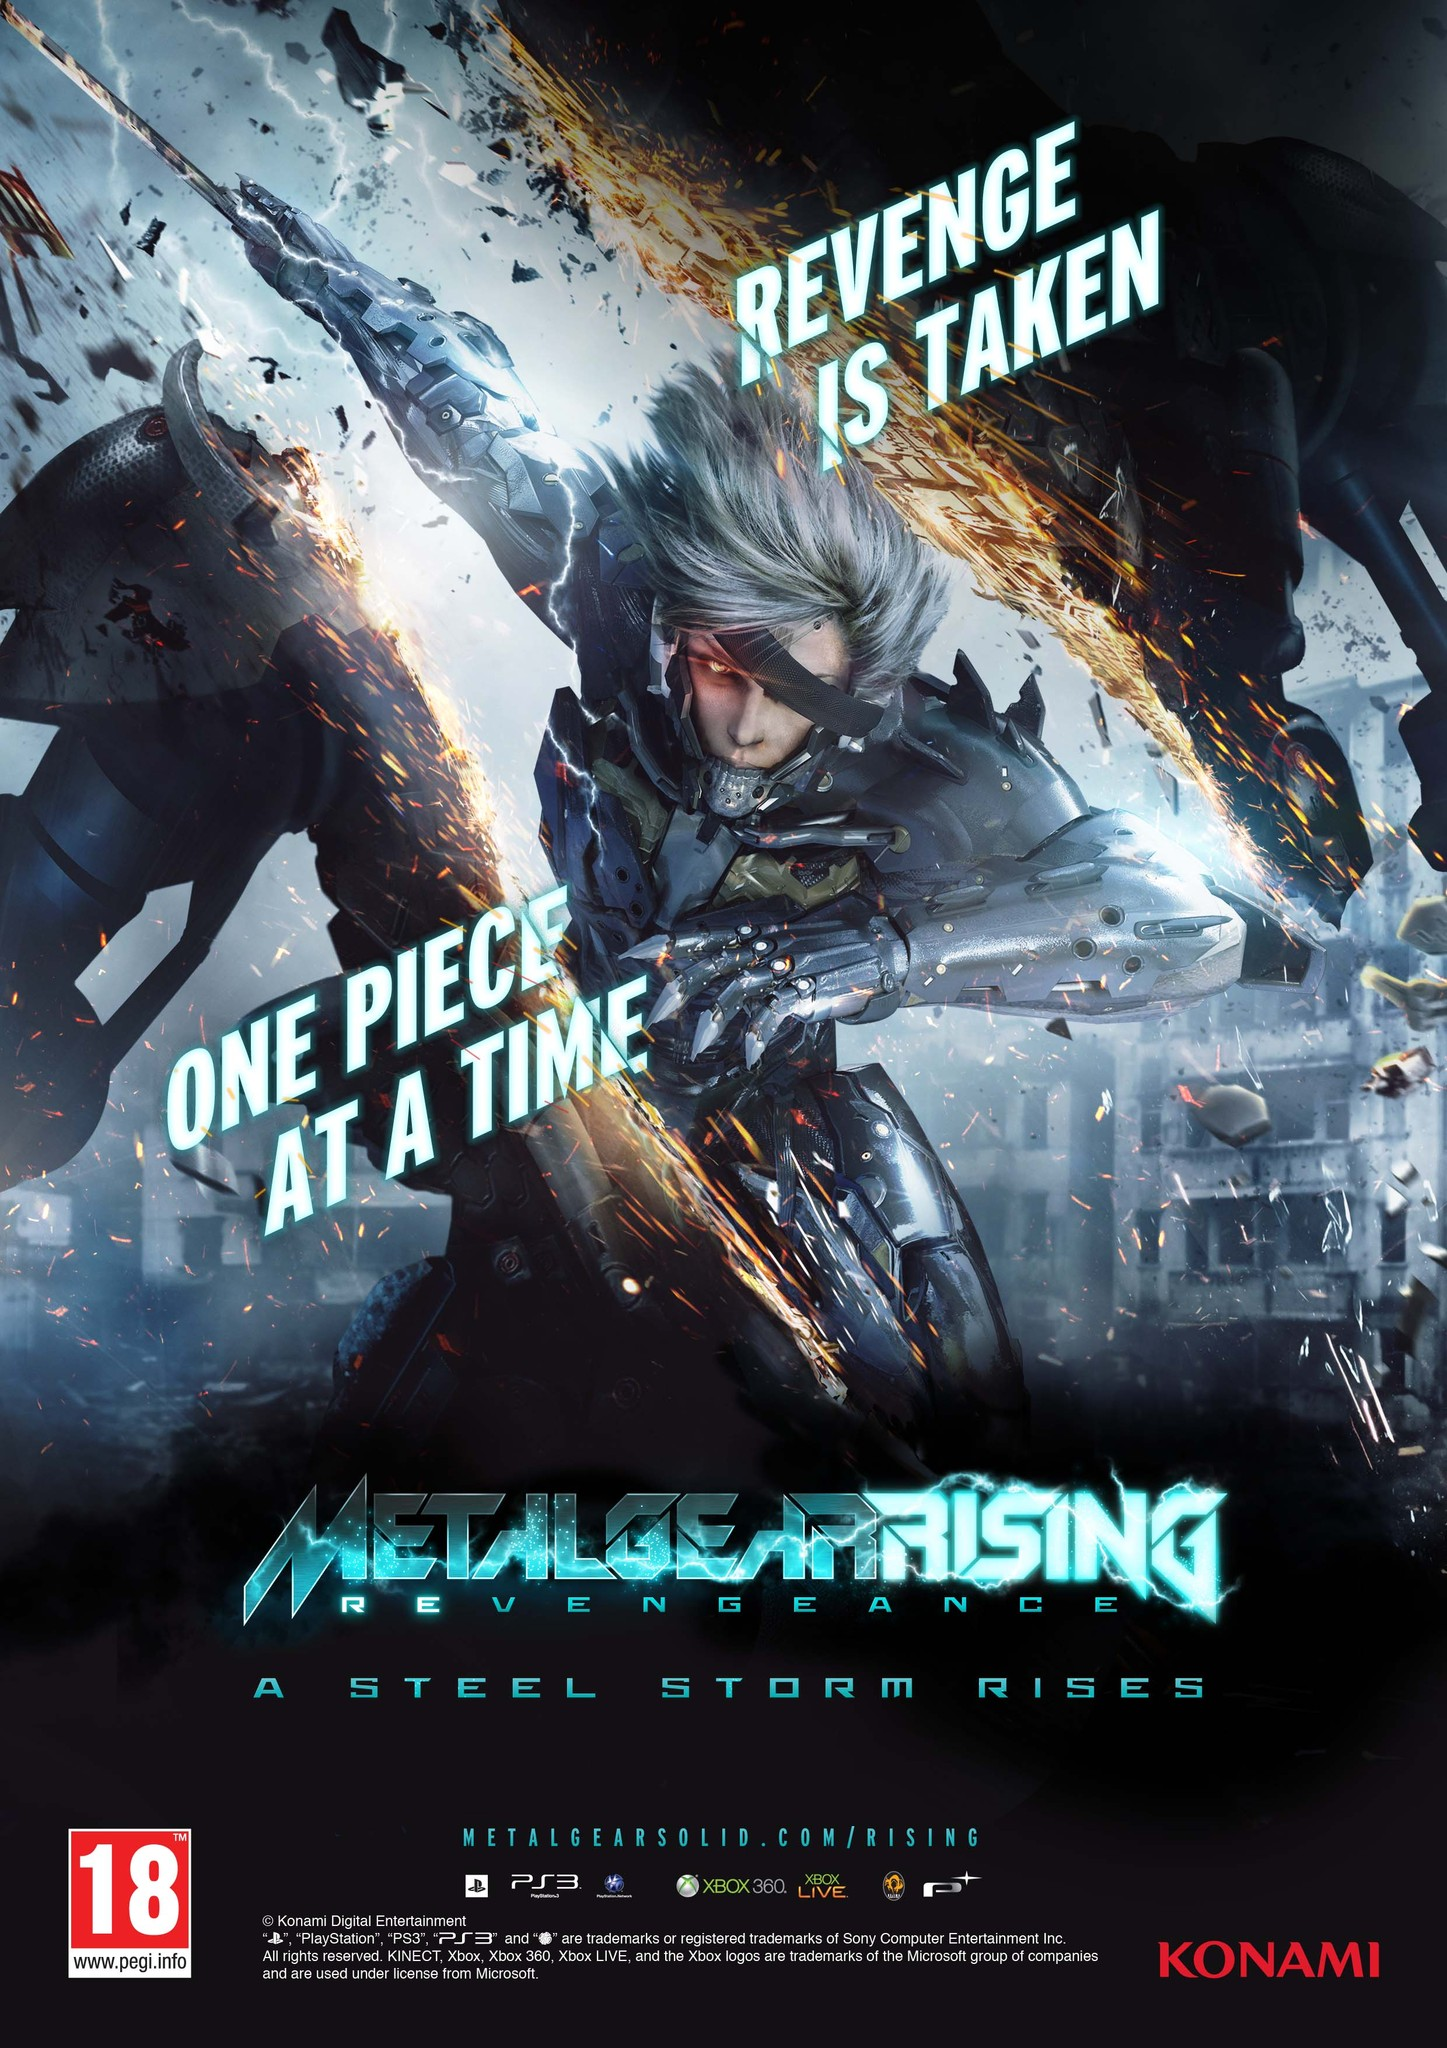 Metal Gear Rising Revengeance Video Game 2013 Imdb